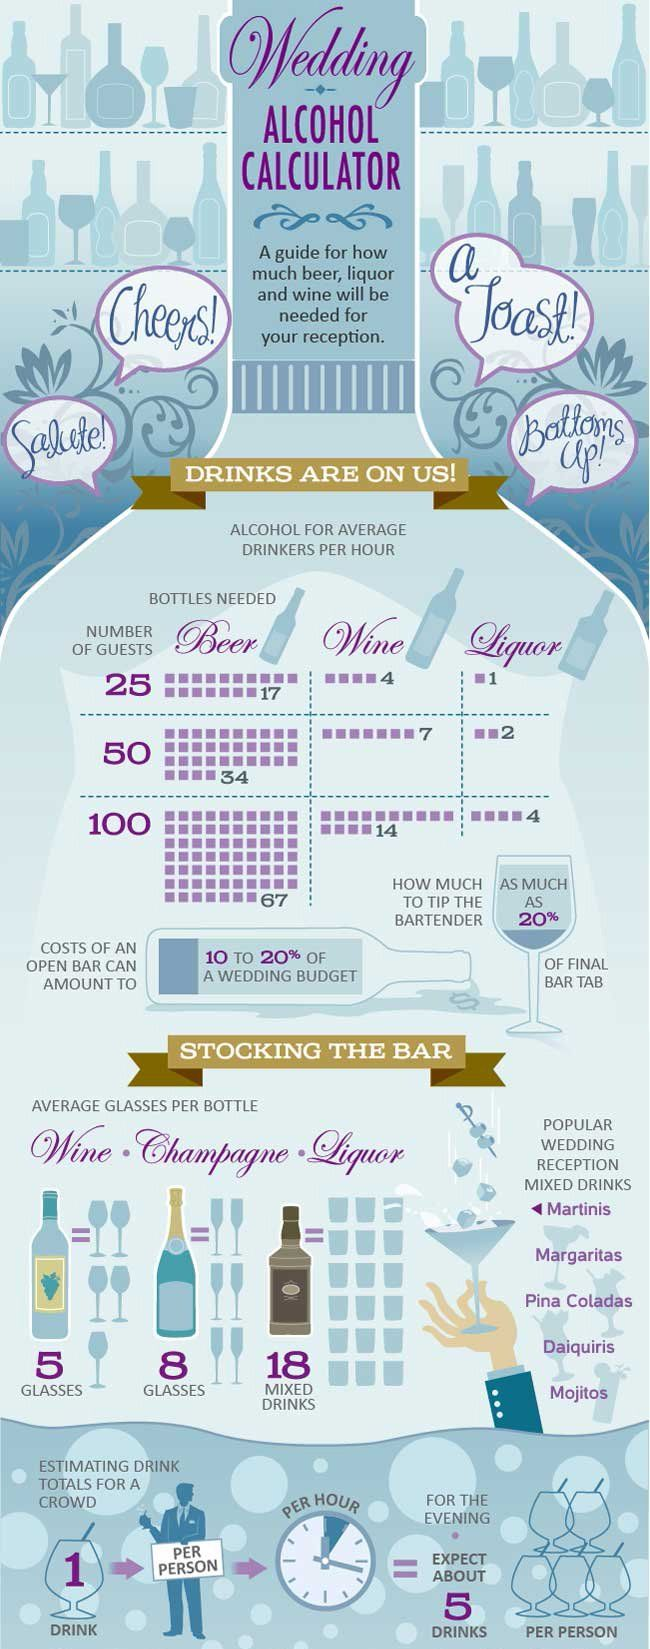 #BigDay #weddings #booze #weddingreception    Cheers – Wedding Alcohol Calculator with Signature Drink Recipes Check more at http://bigday.io/2015/09/18/cheers-wedding-alcohol-calculator-with-signature-drink-recipes/